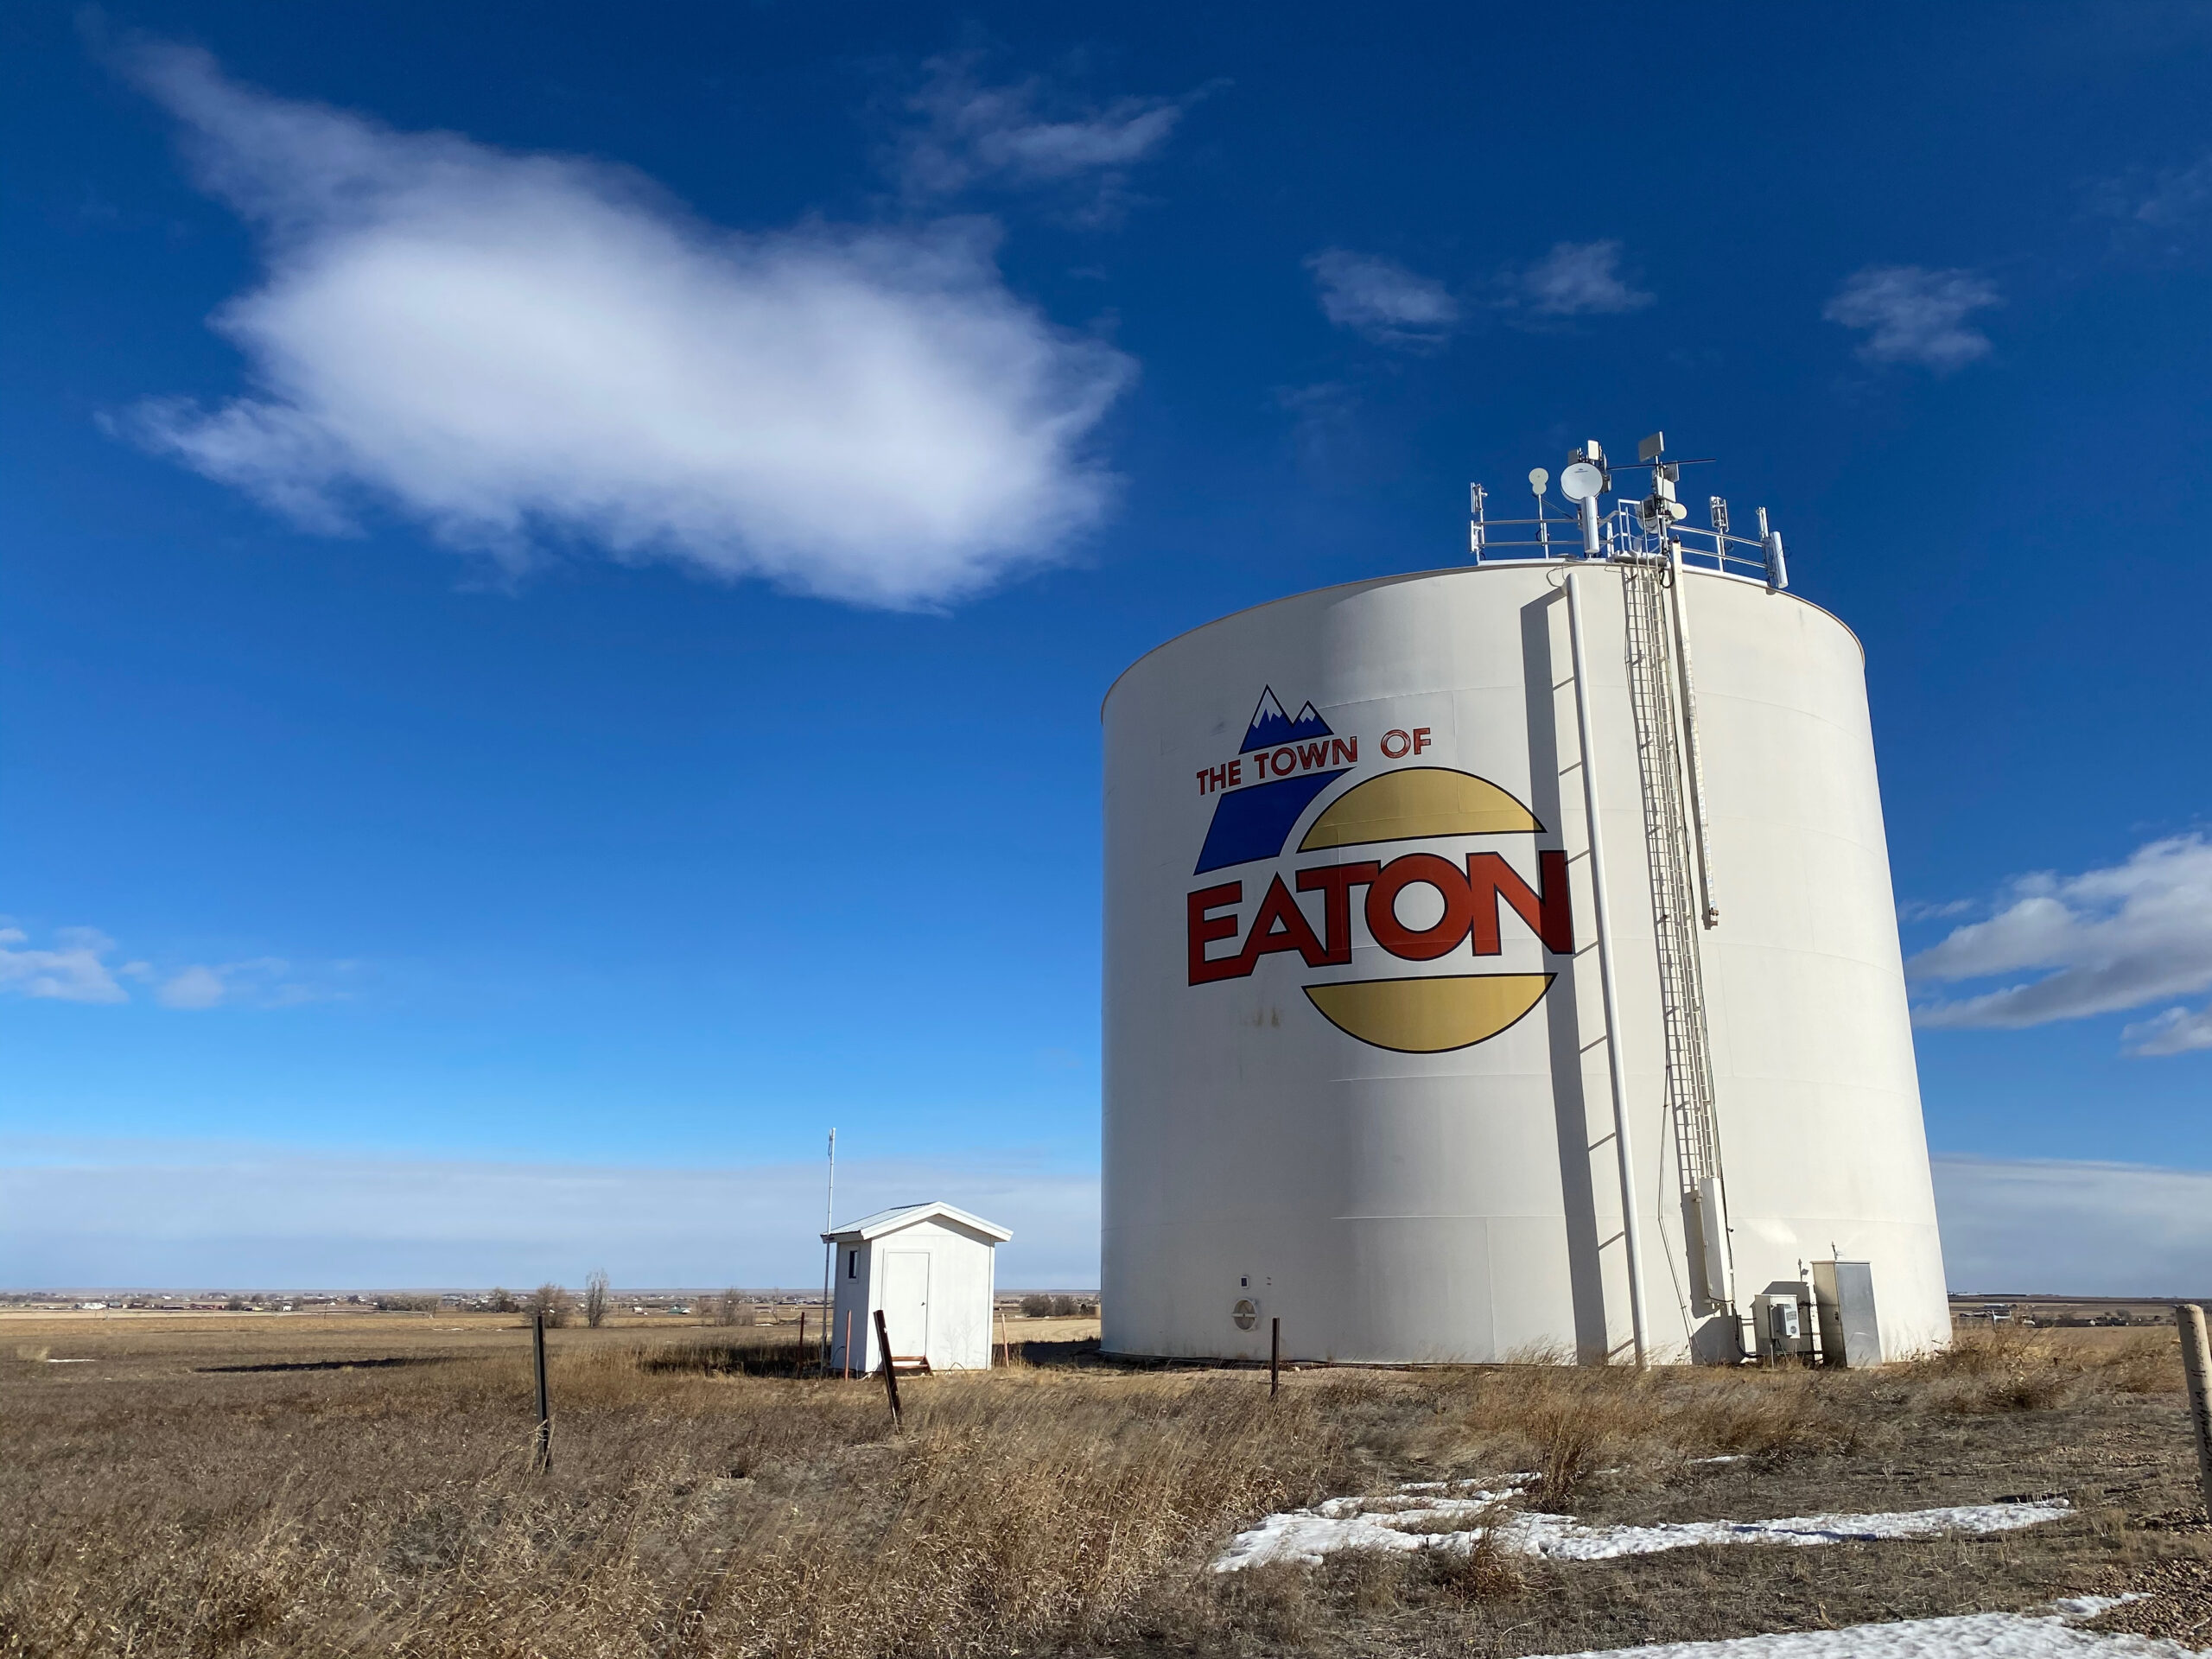 About 5,000 people live in Eaton, Colo., about 20 miles north of Greeley.